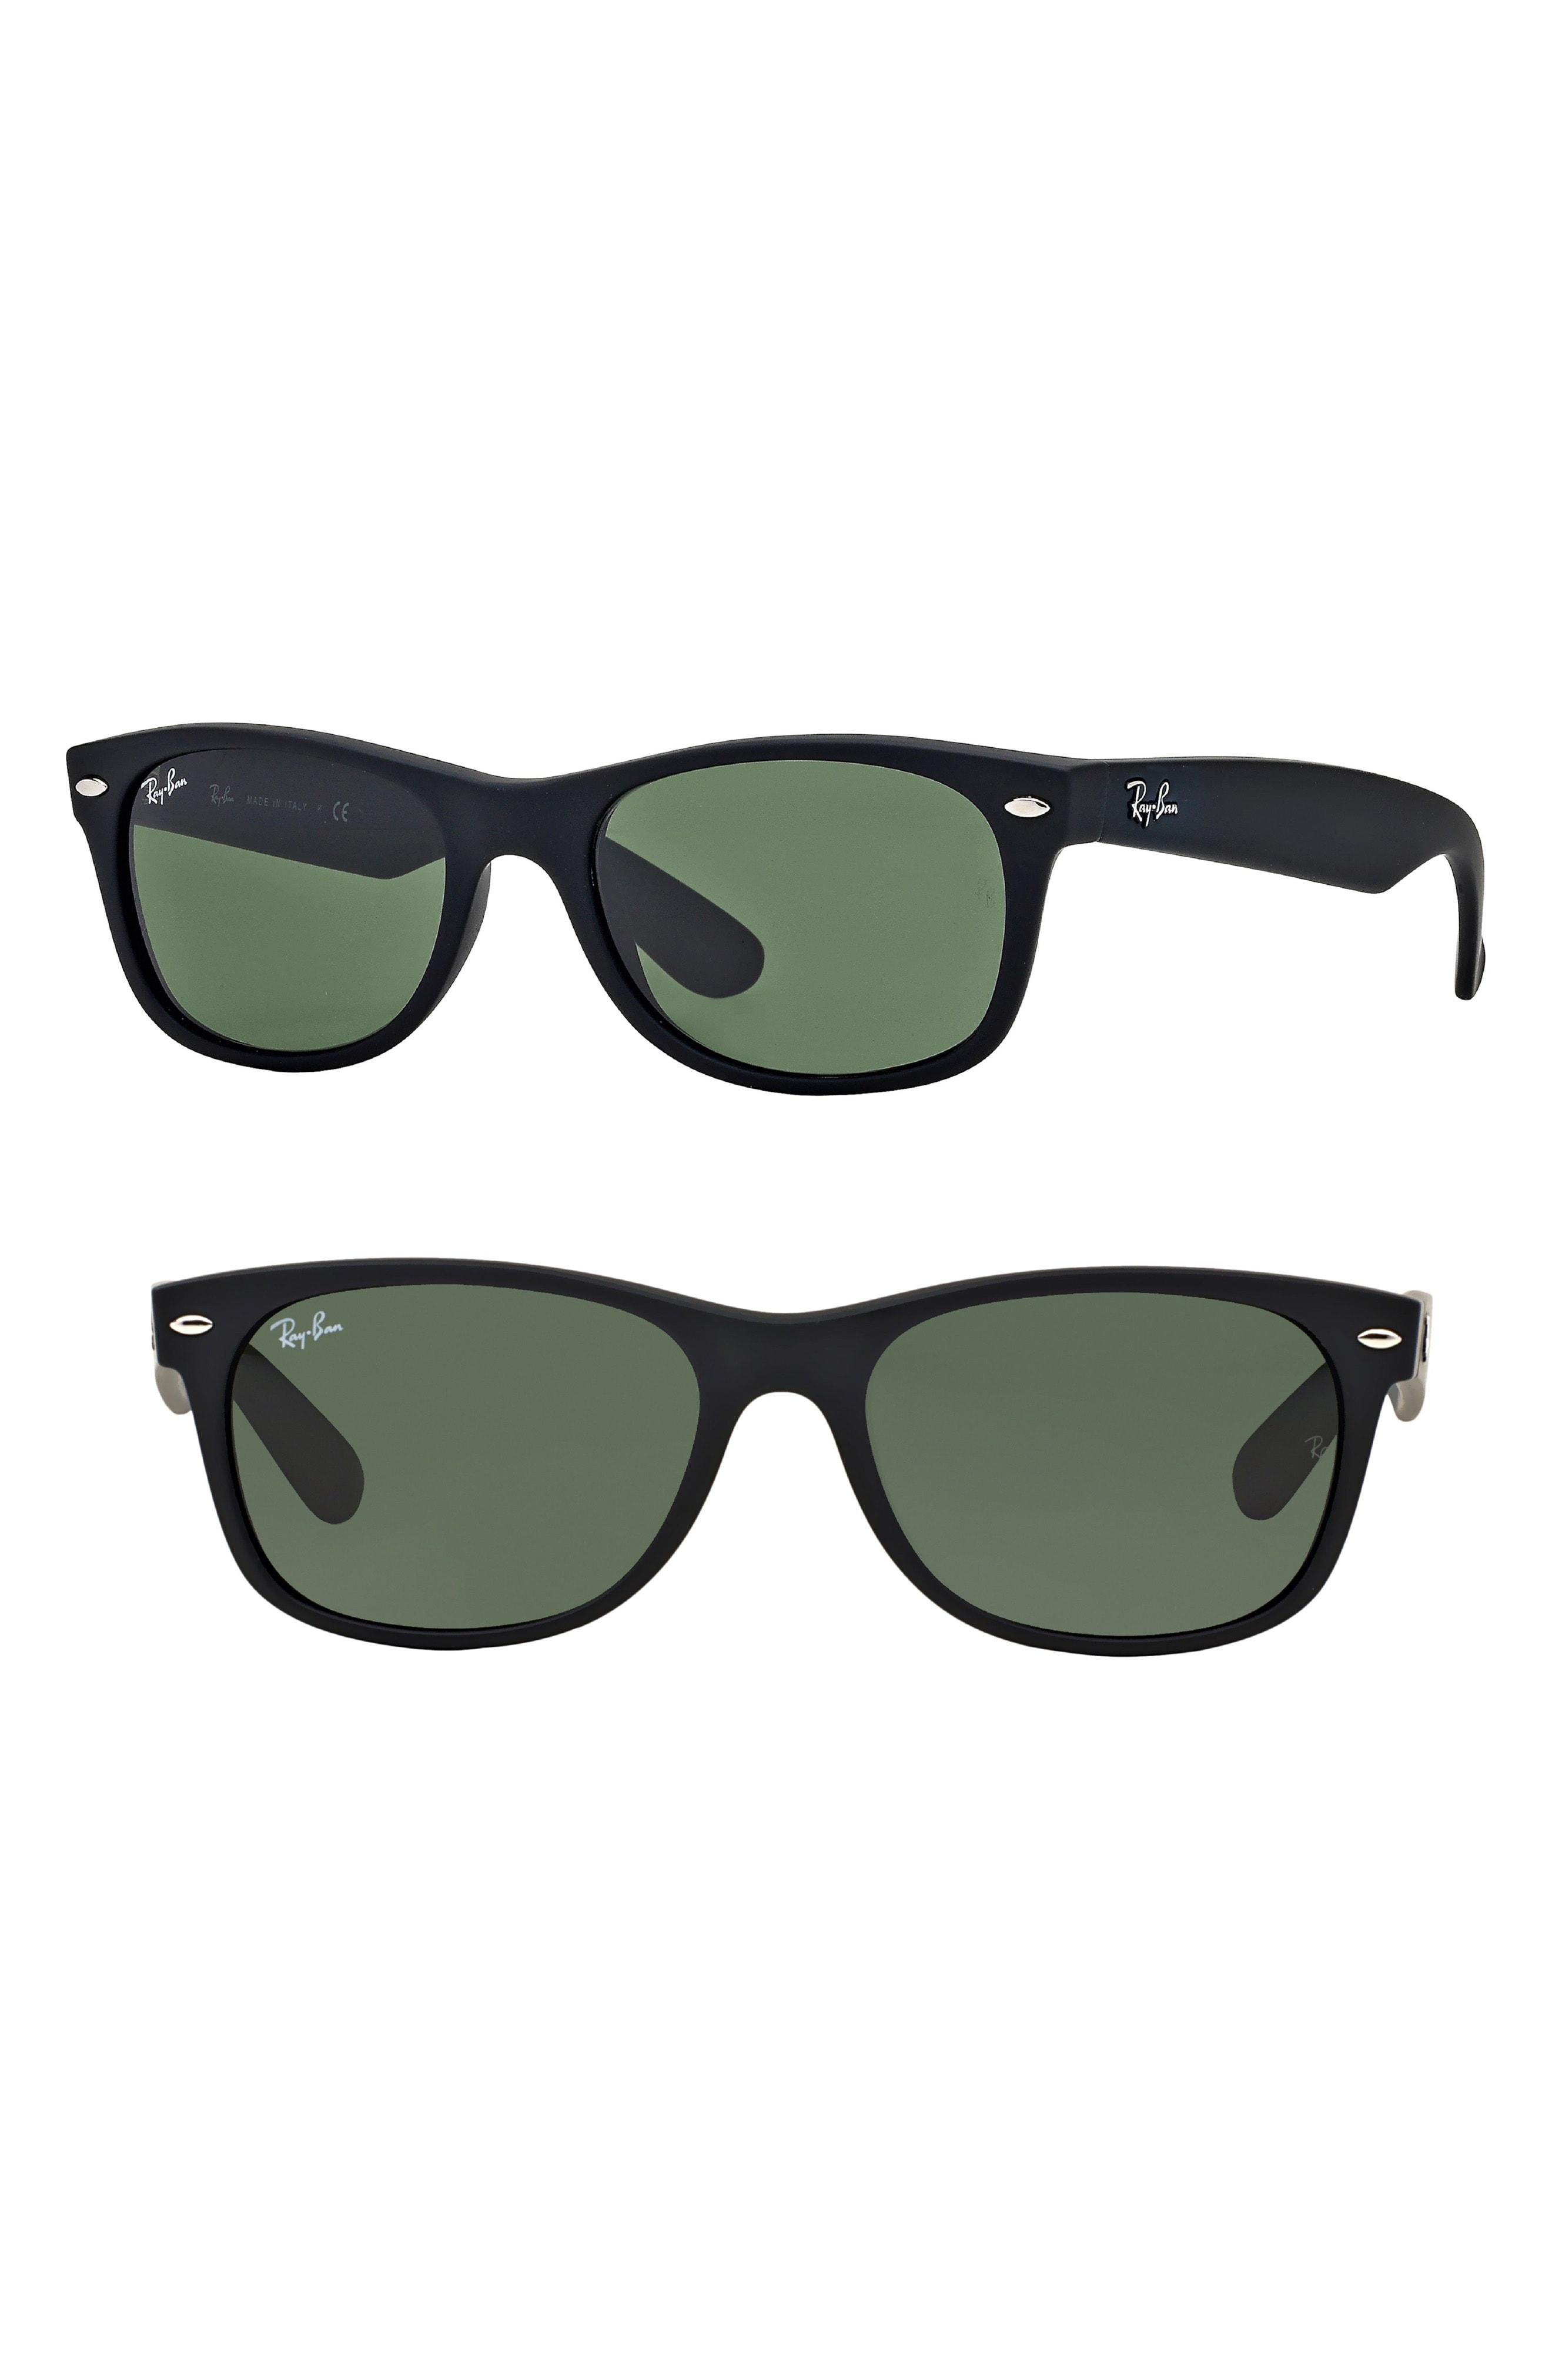 569a853d5d Lyst - Ray-Ban Standard New Wayfarer 55mm Sunglasses in Black